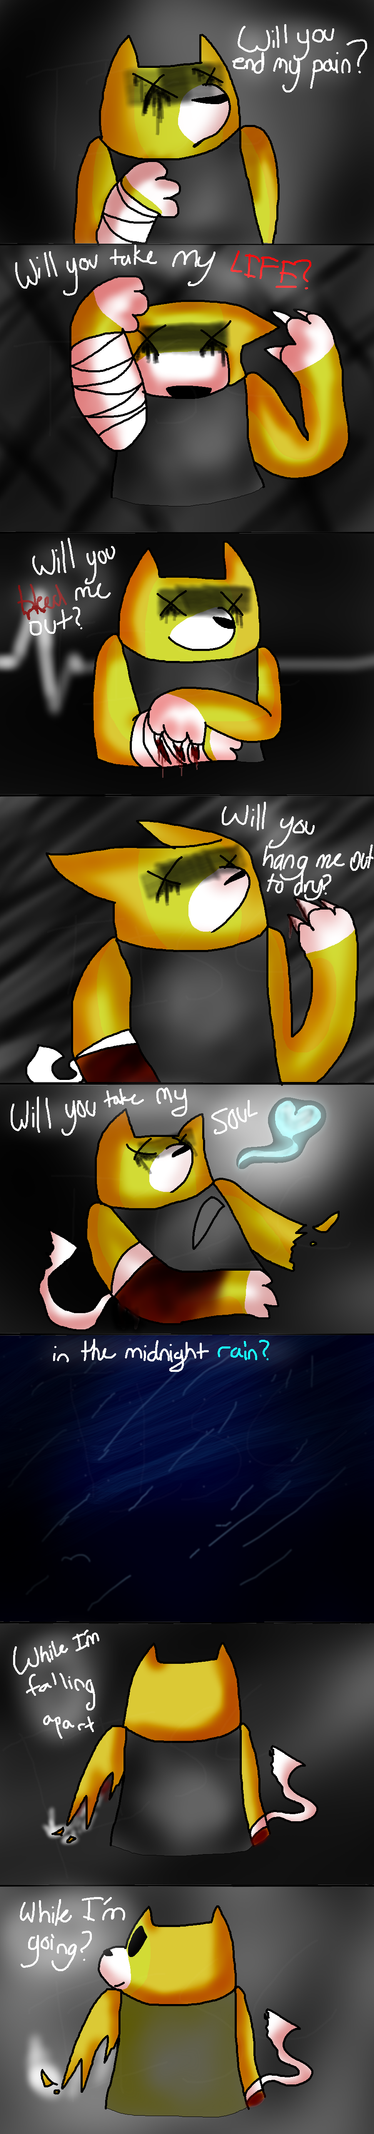 will you? by thisisspartacat1230